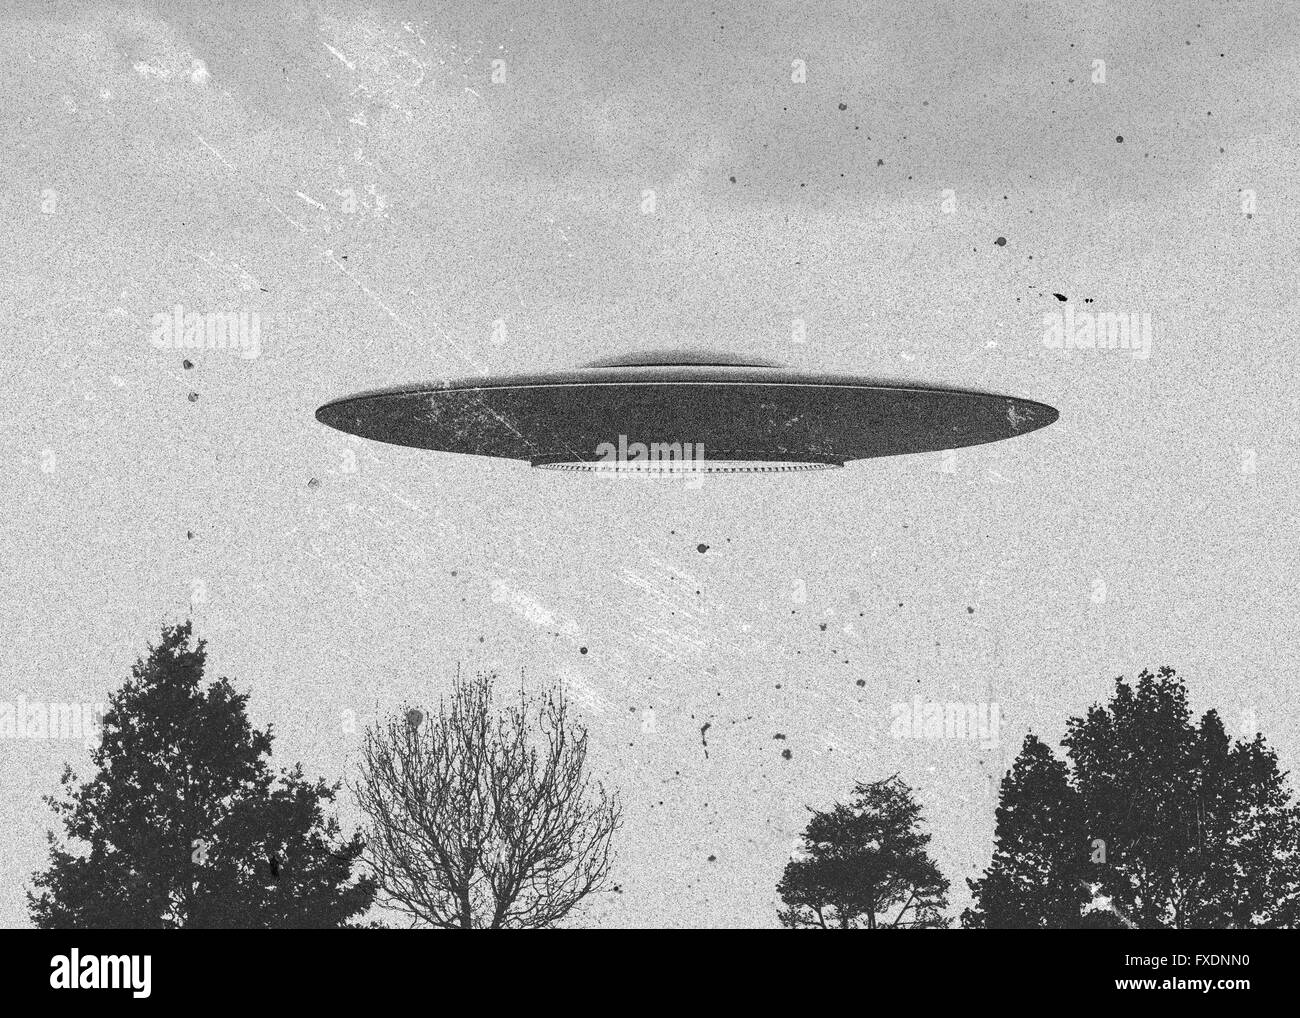 3d rendering of flying saucer ufo vintage style - Stock Image